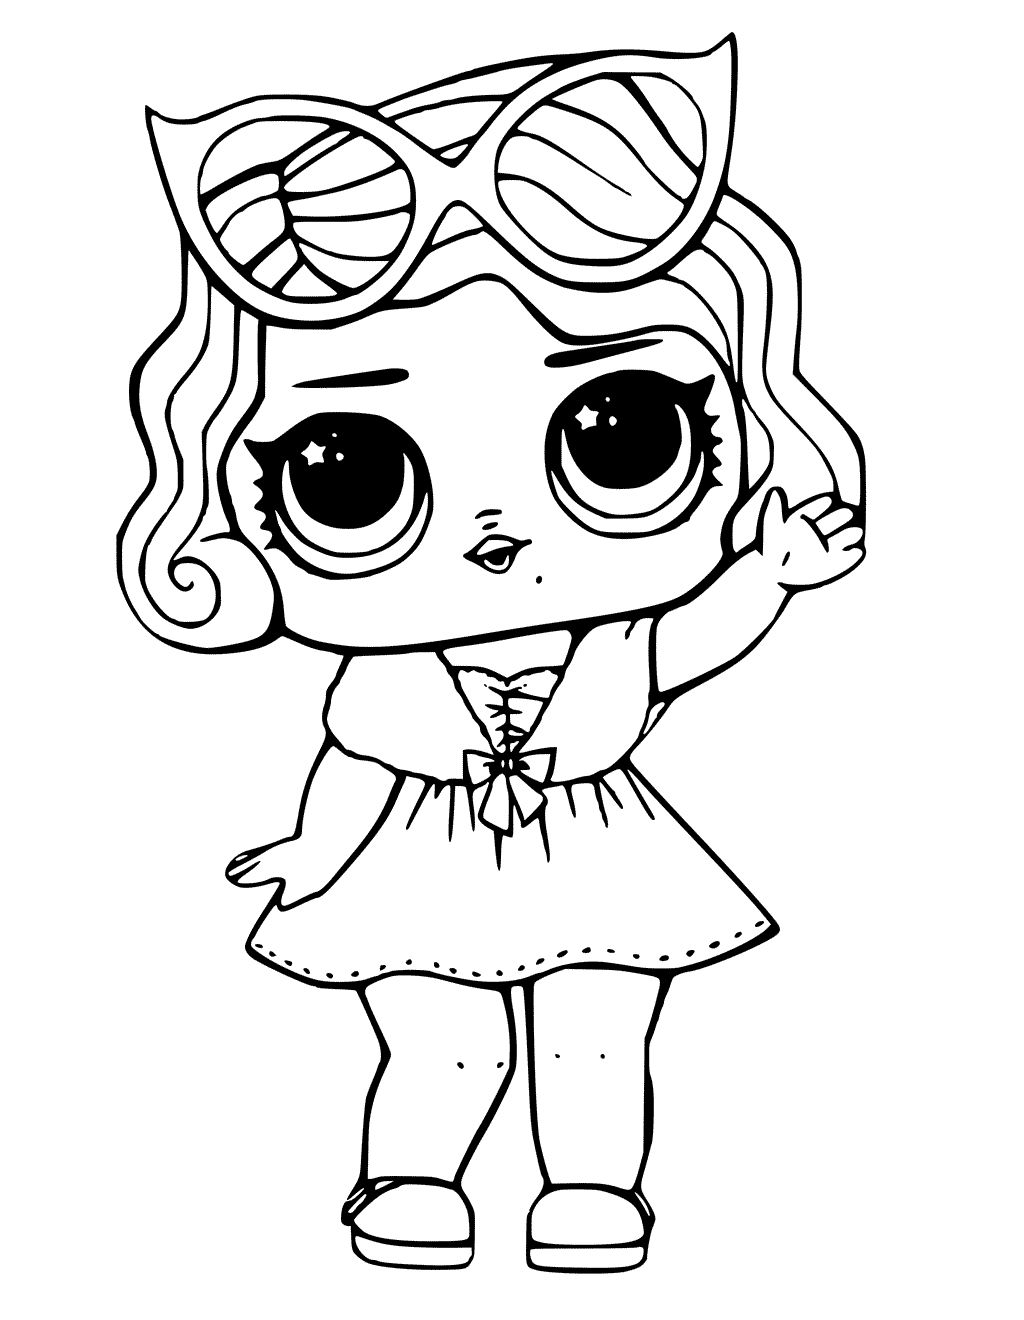 Lol Coloring To Print Coloring Pages Allow Kids To Accompany Their Favorite Characters On An Baby Coloring Pages Unicorn Coloring Pages Cute Coloring Pages